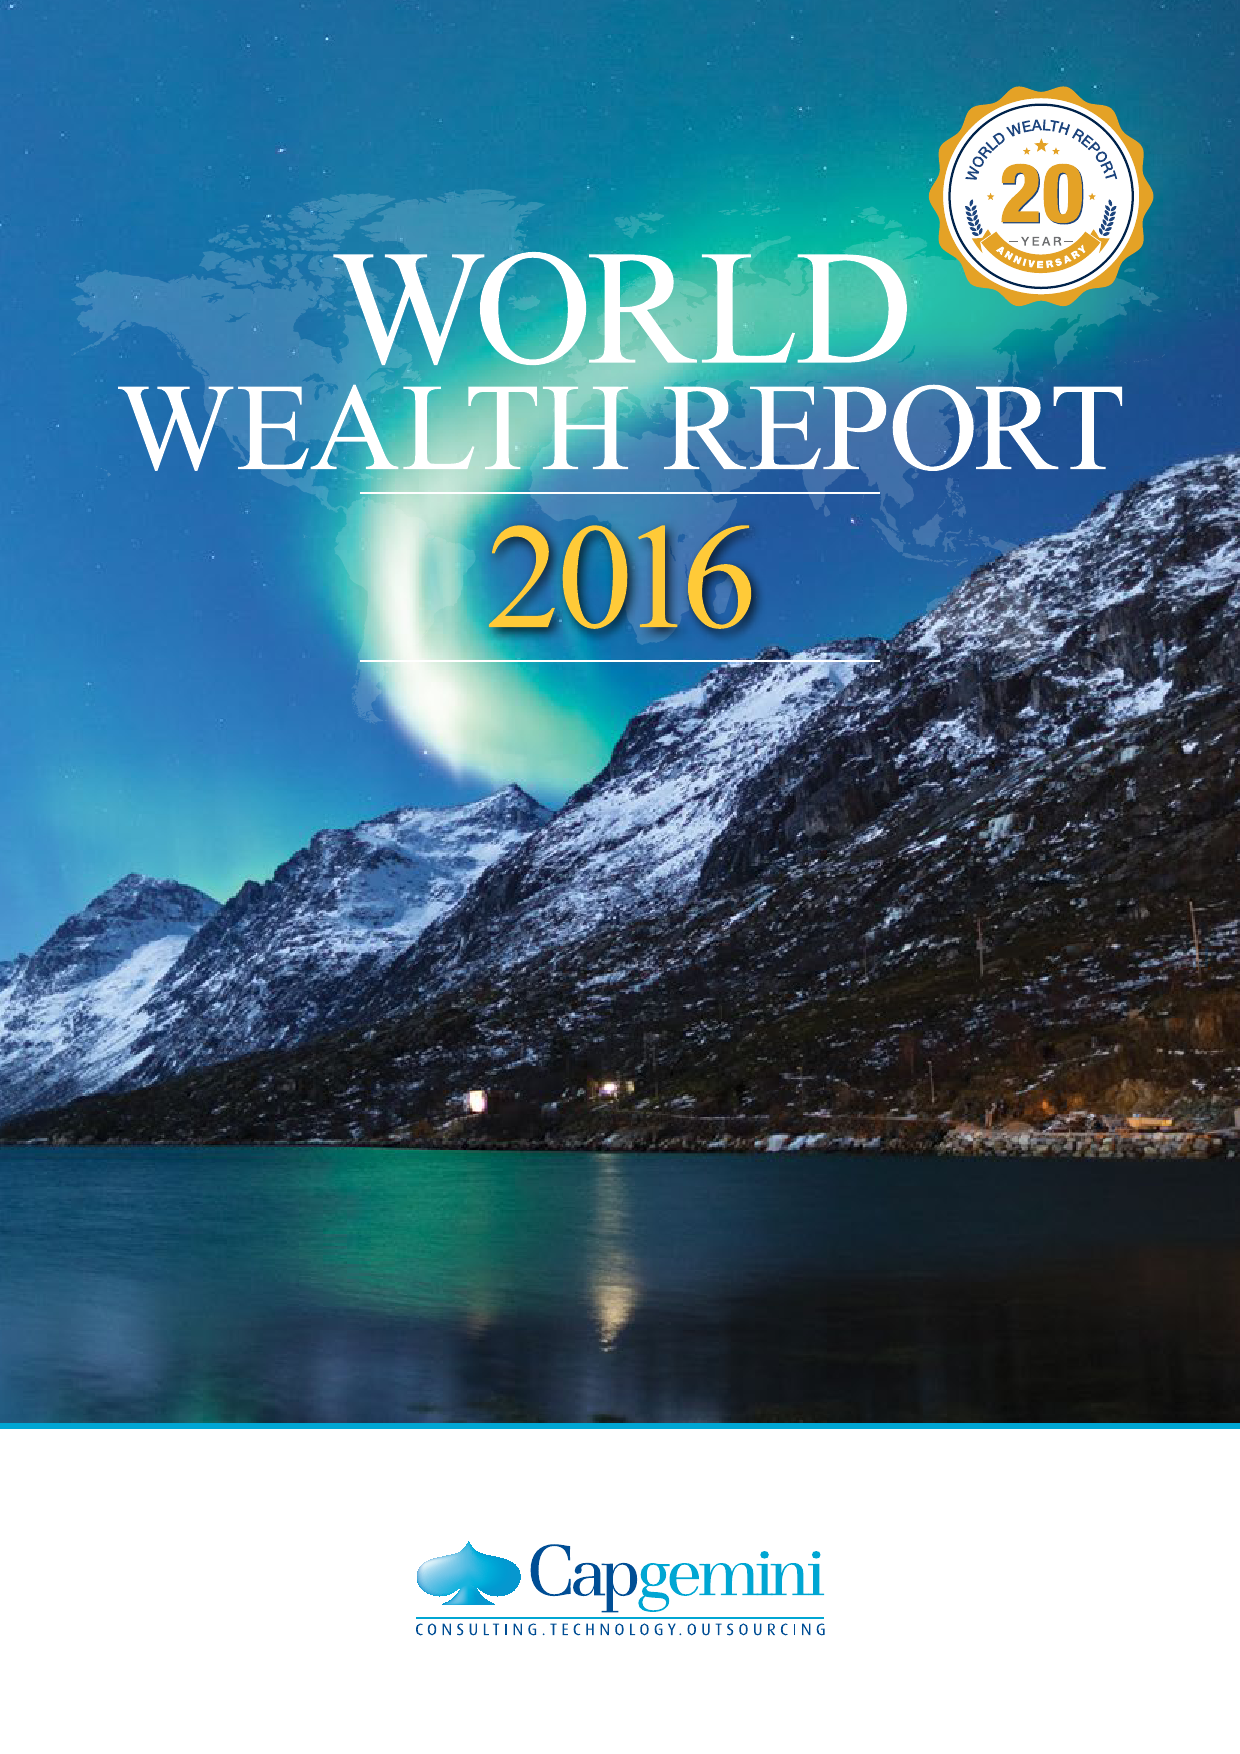 World_Wealth_Report_2016_000001